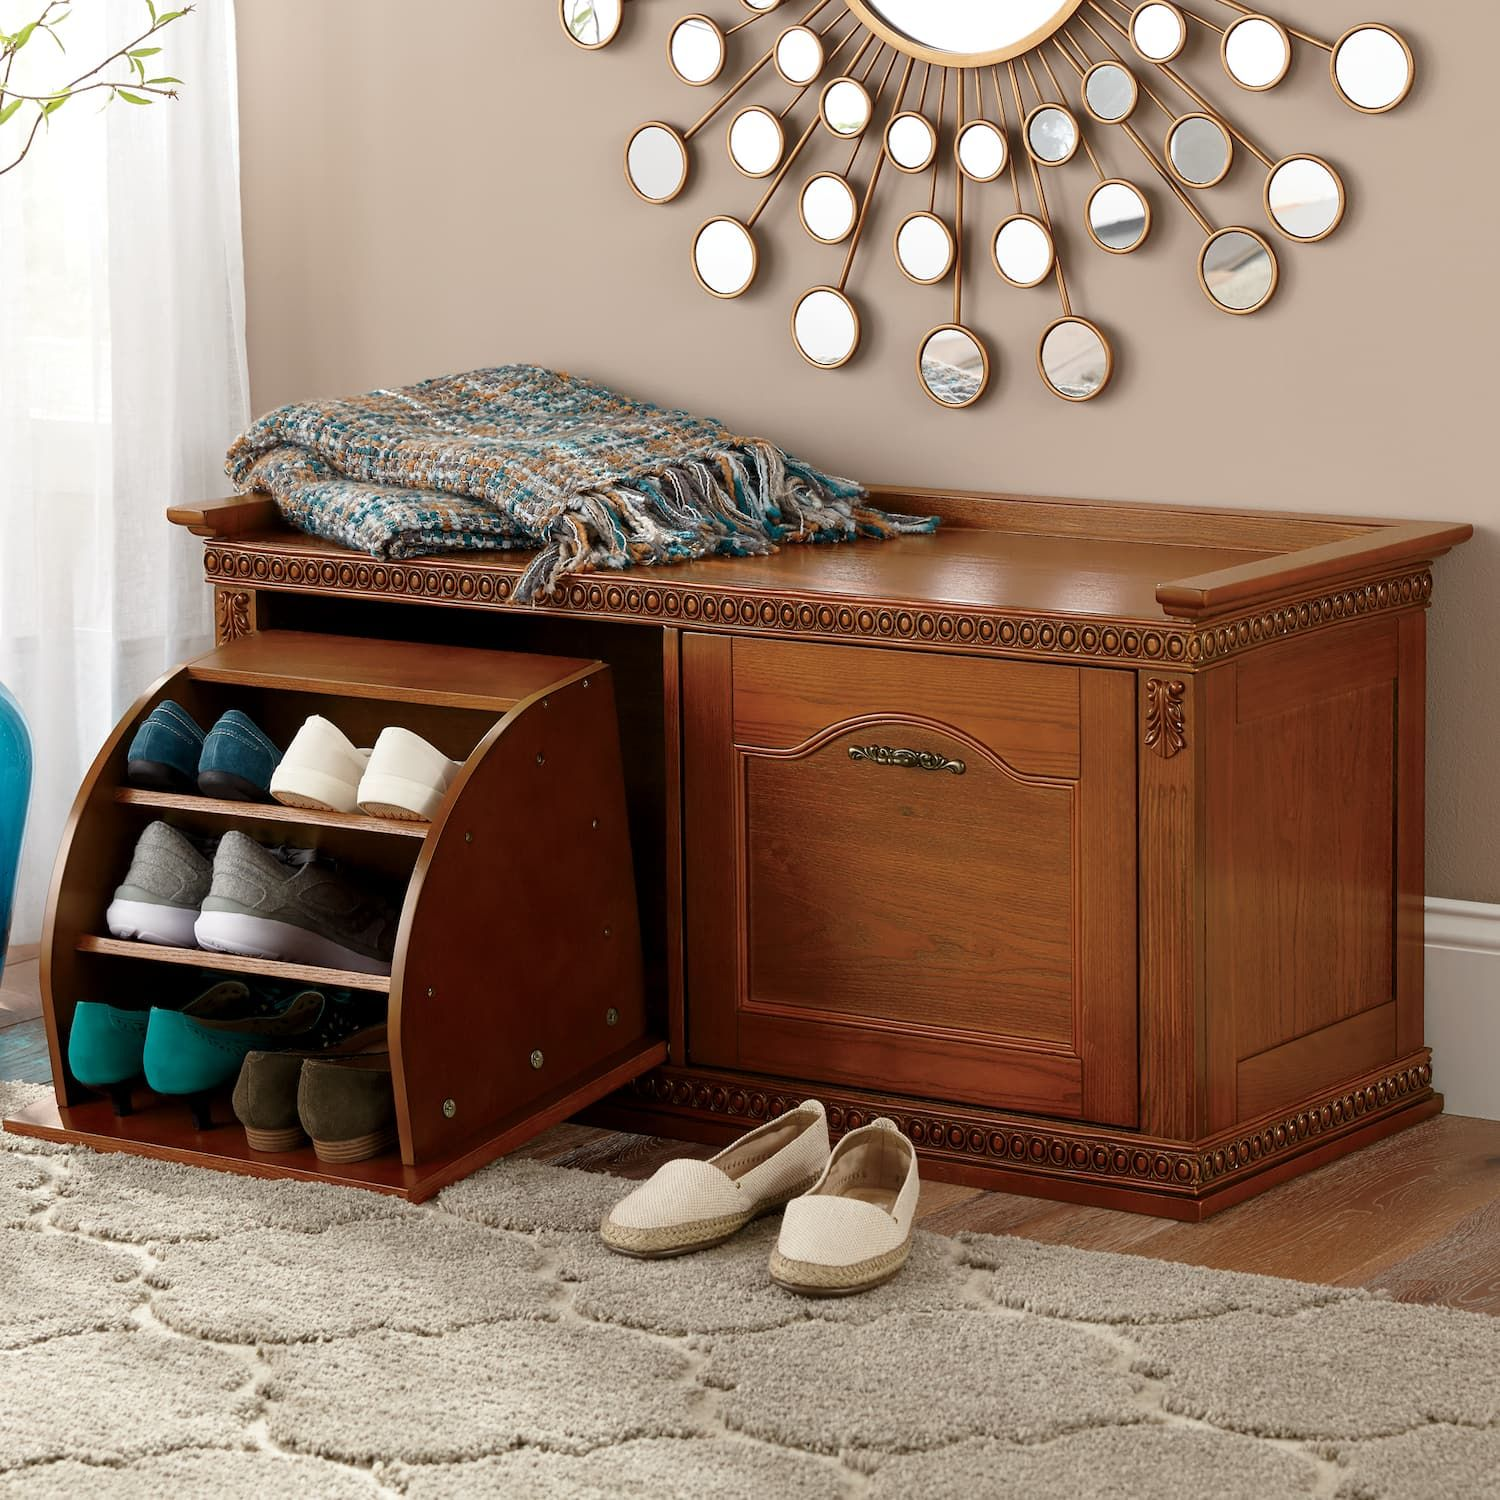 Marvelous Signature Shoe Storage Bench Wants In 2019 Bench With Bralicious Painted Fabric Chair Ideas Braliciousco